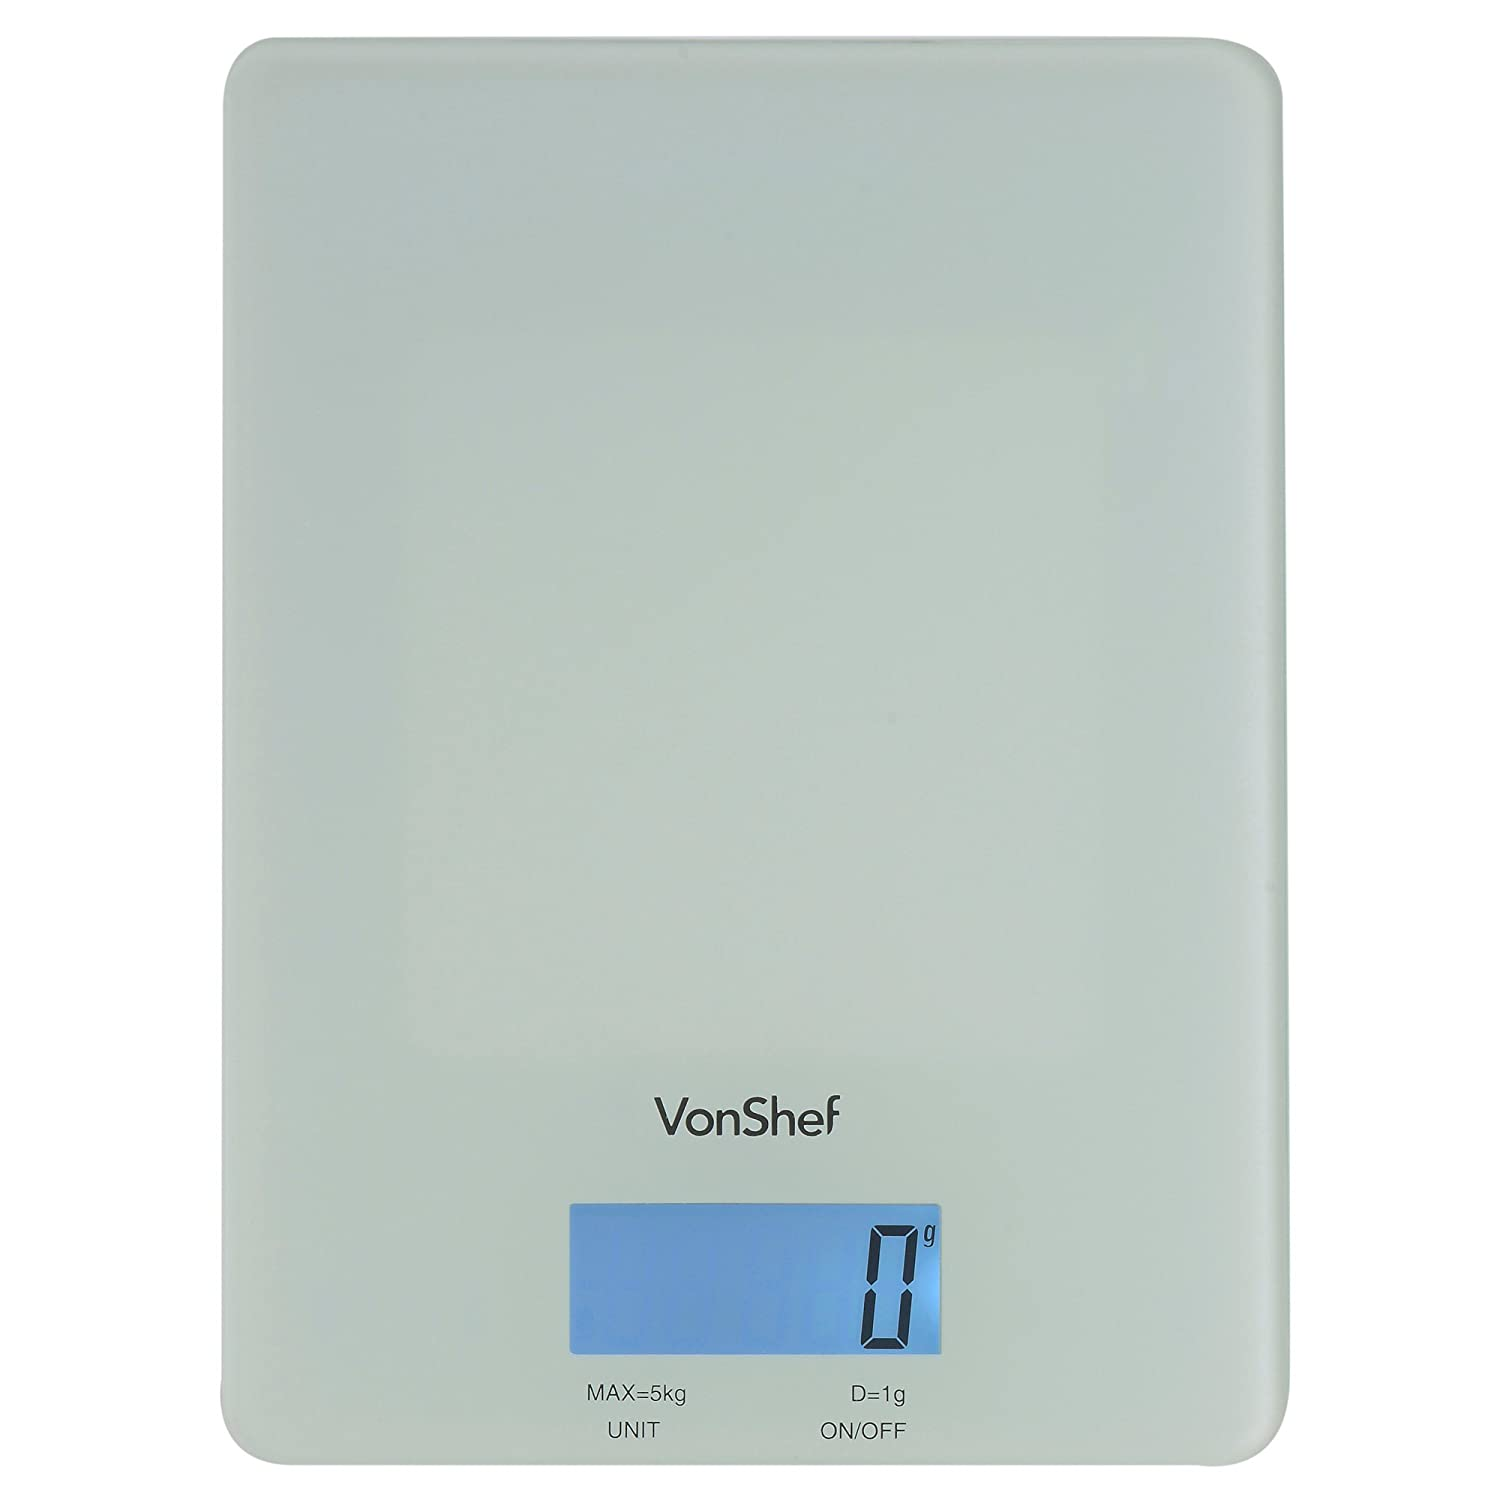 VonShef 07/129 Slim Glass Electronic Kitchen Scale